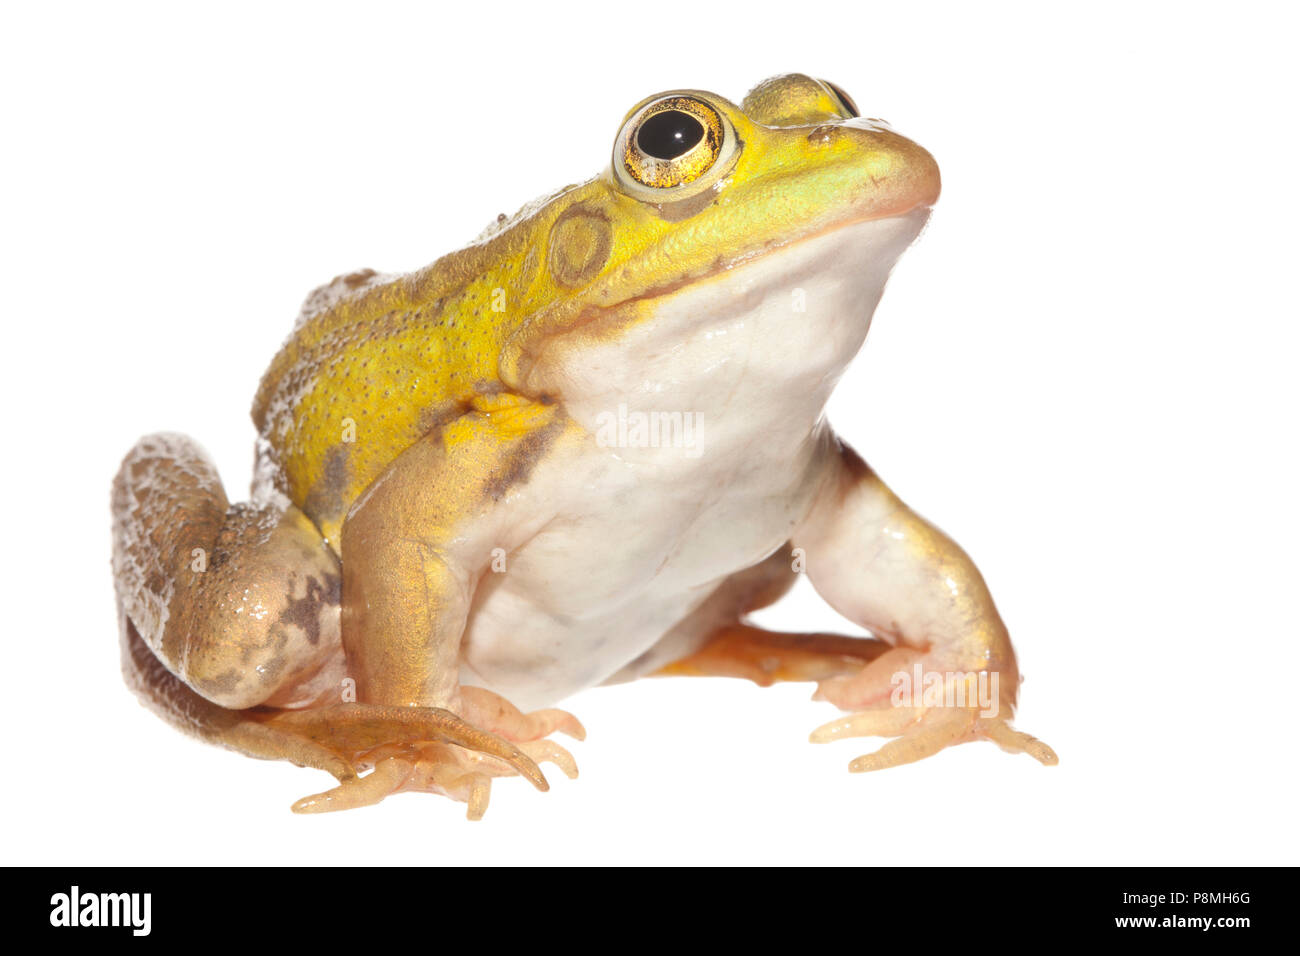 pool frog isolated against a white background - Stock Image